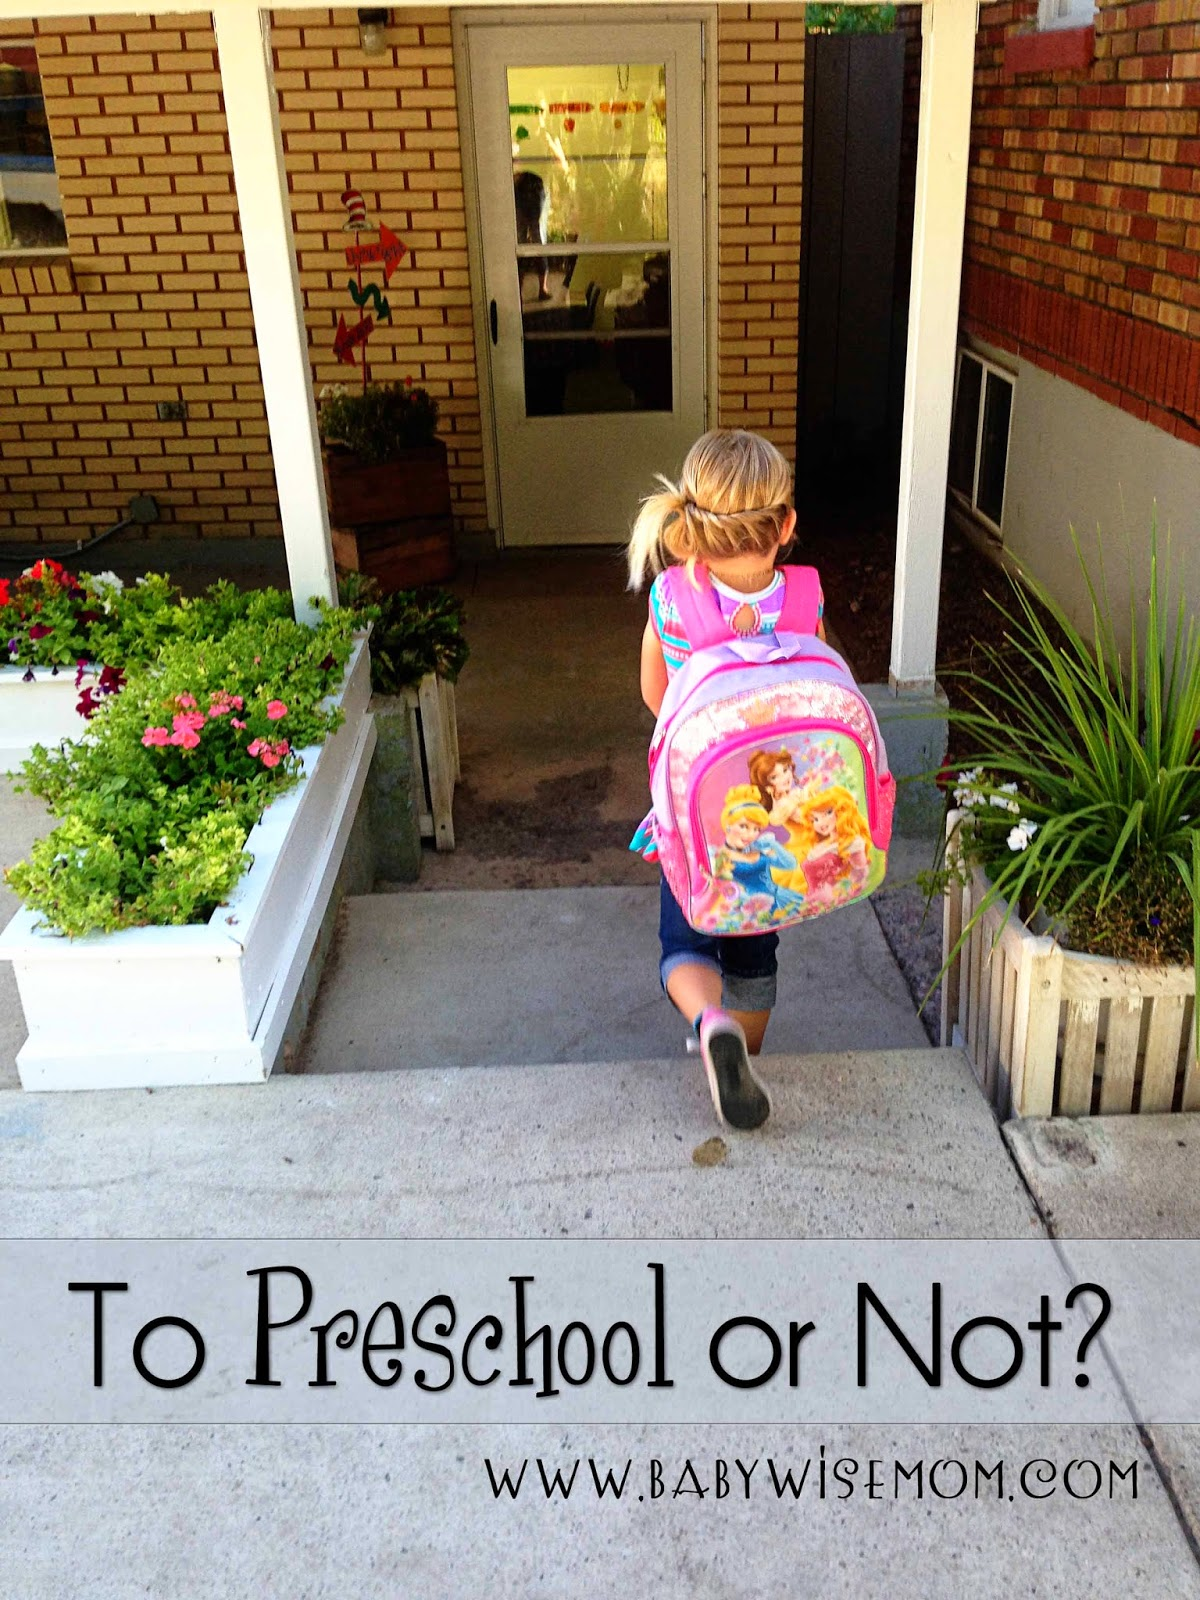 To Preschool Or Not?